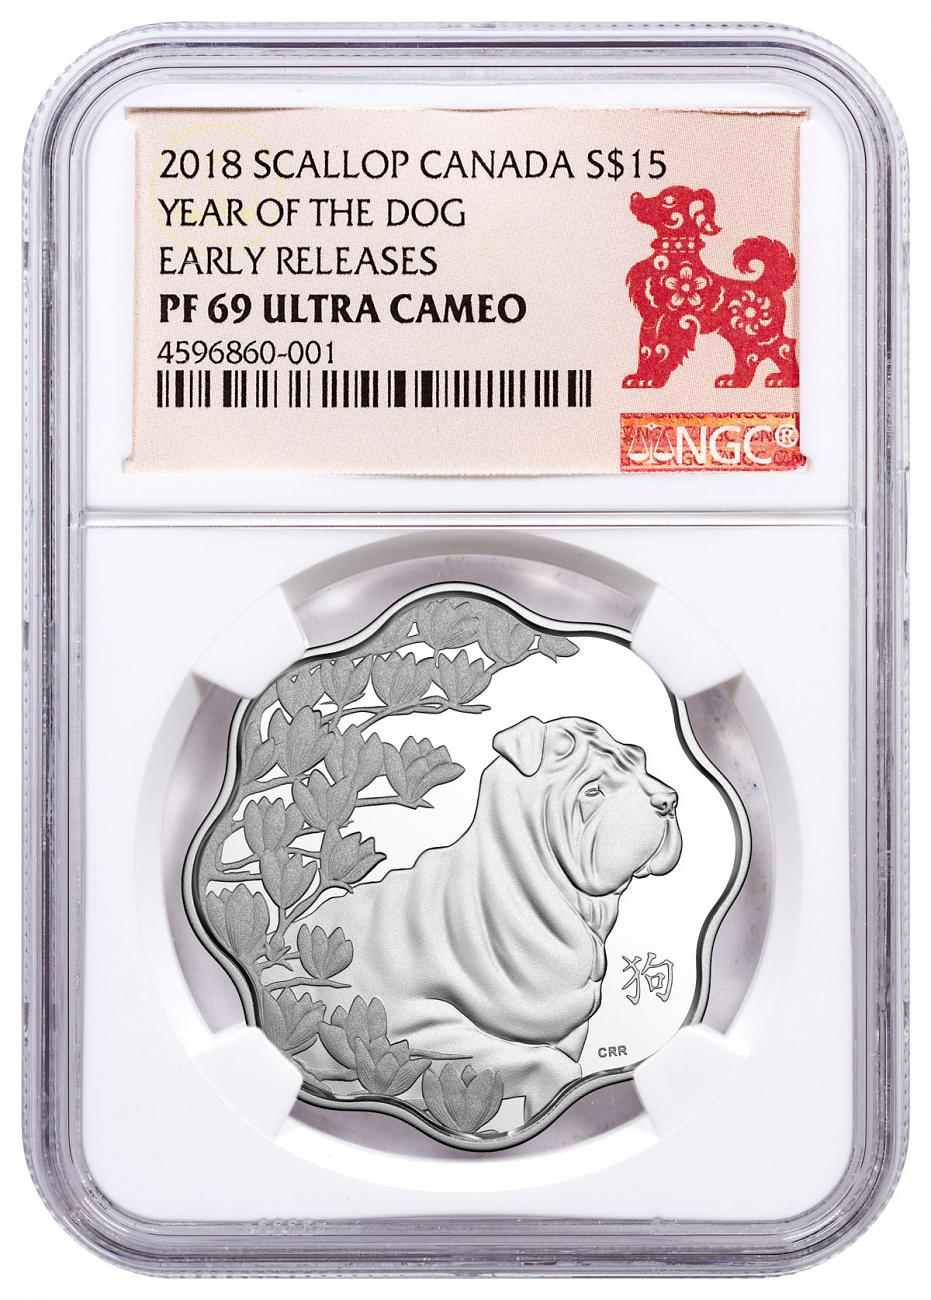 2018 Canada Year of the Dog Silver Lunar Lotus Proof $15 Coin NGC PF69 UC ER Year of the Dog Label